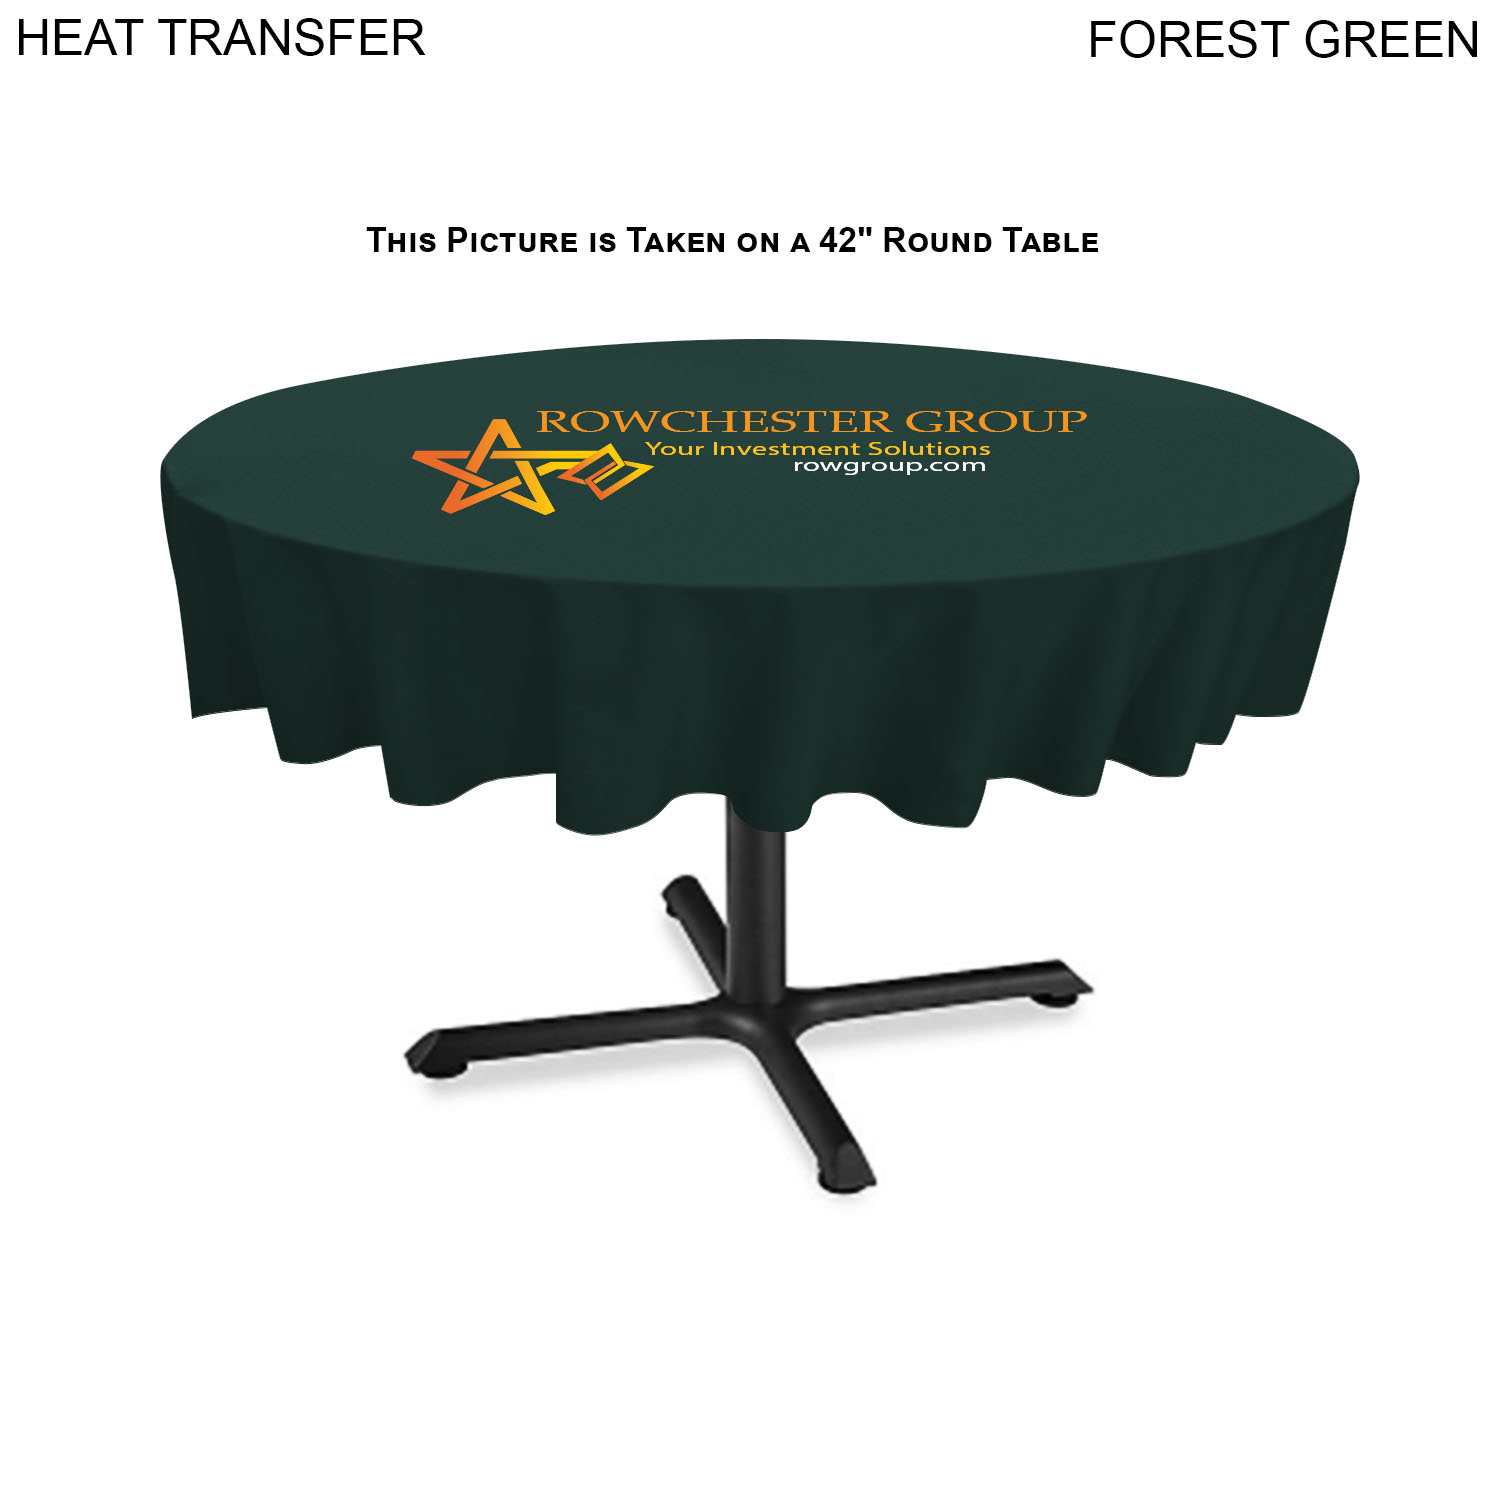 Table Runner,Closed Back, 60x90,  HT623, Full Colour Jumbo-Sized Imprint